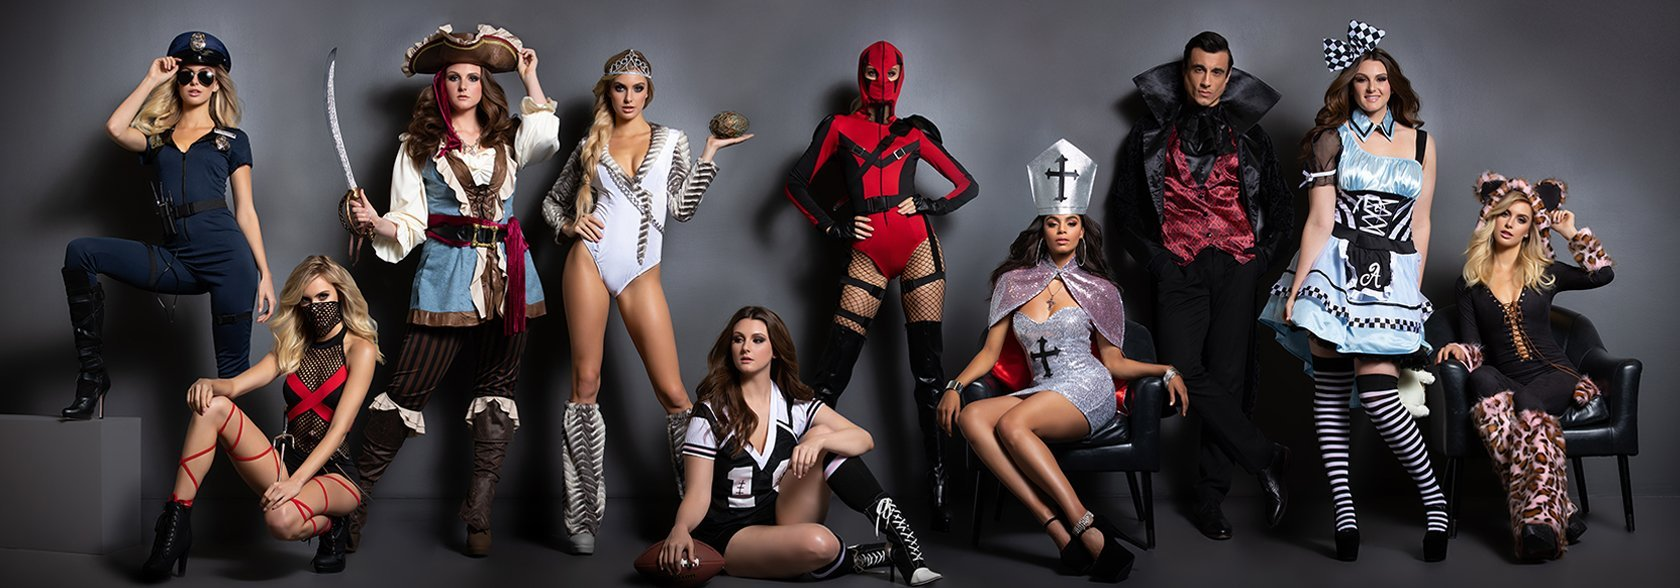 Group image of multiple Halloween costumes